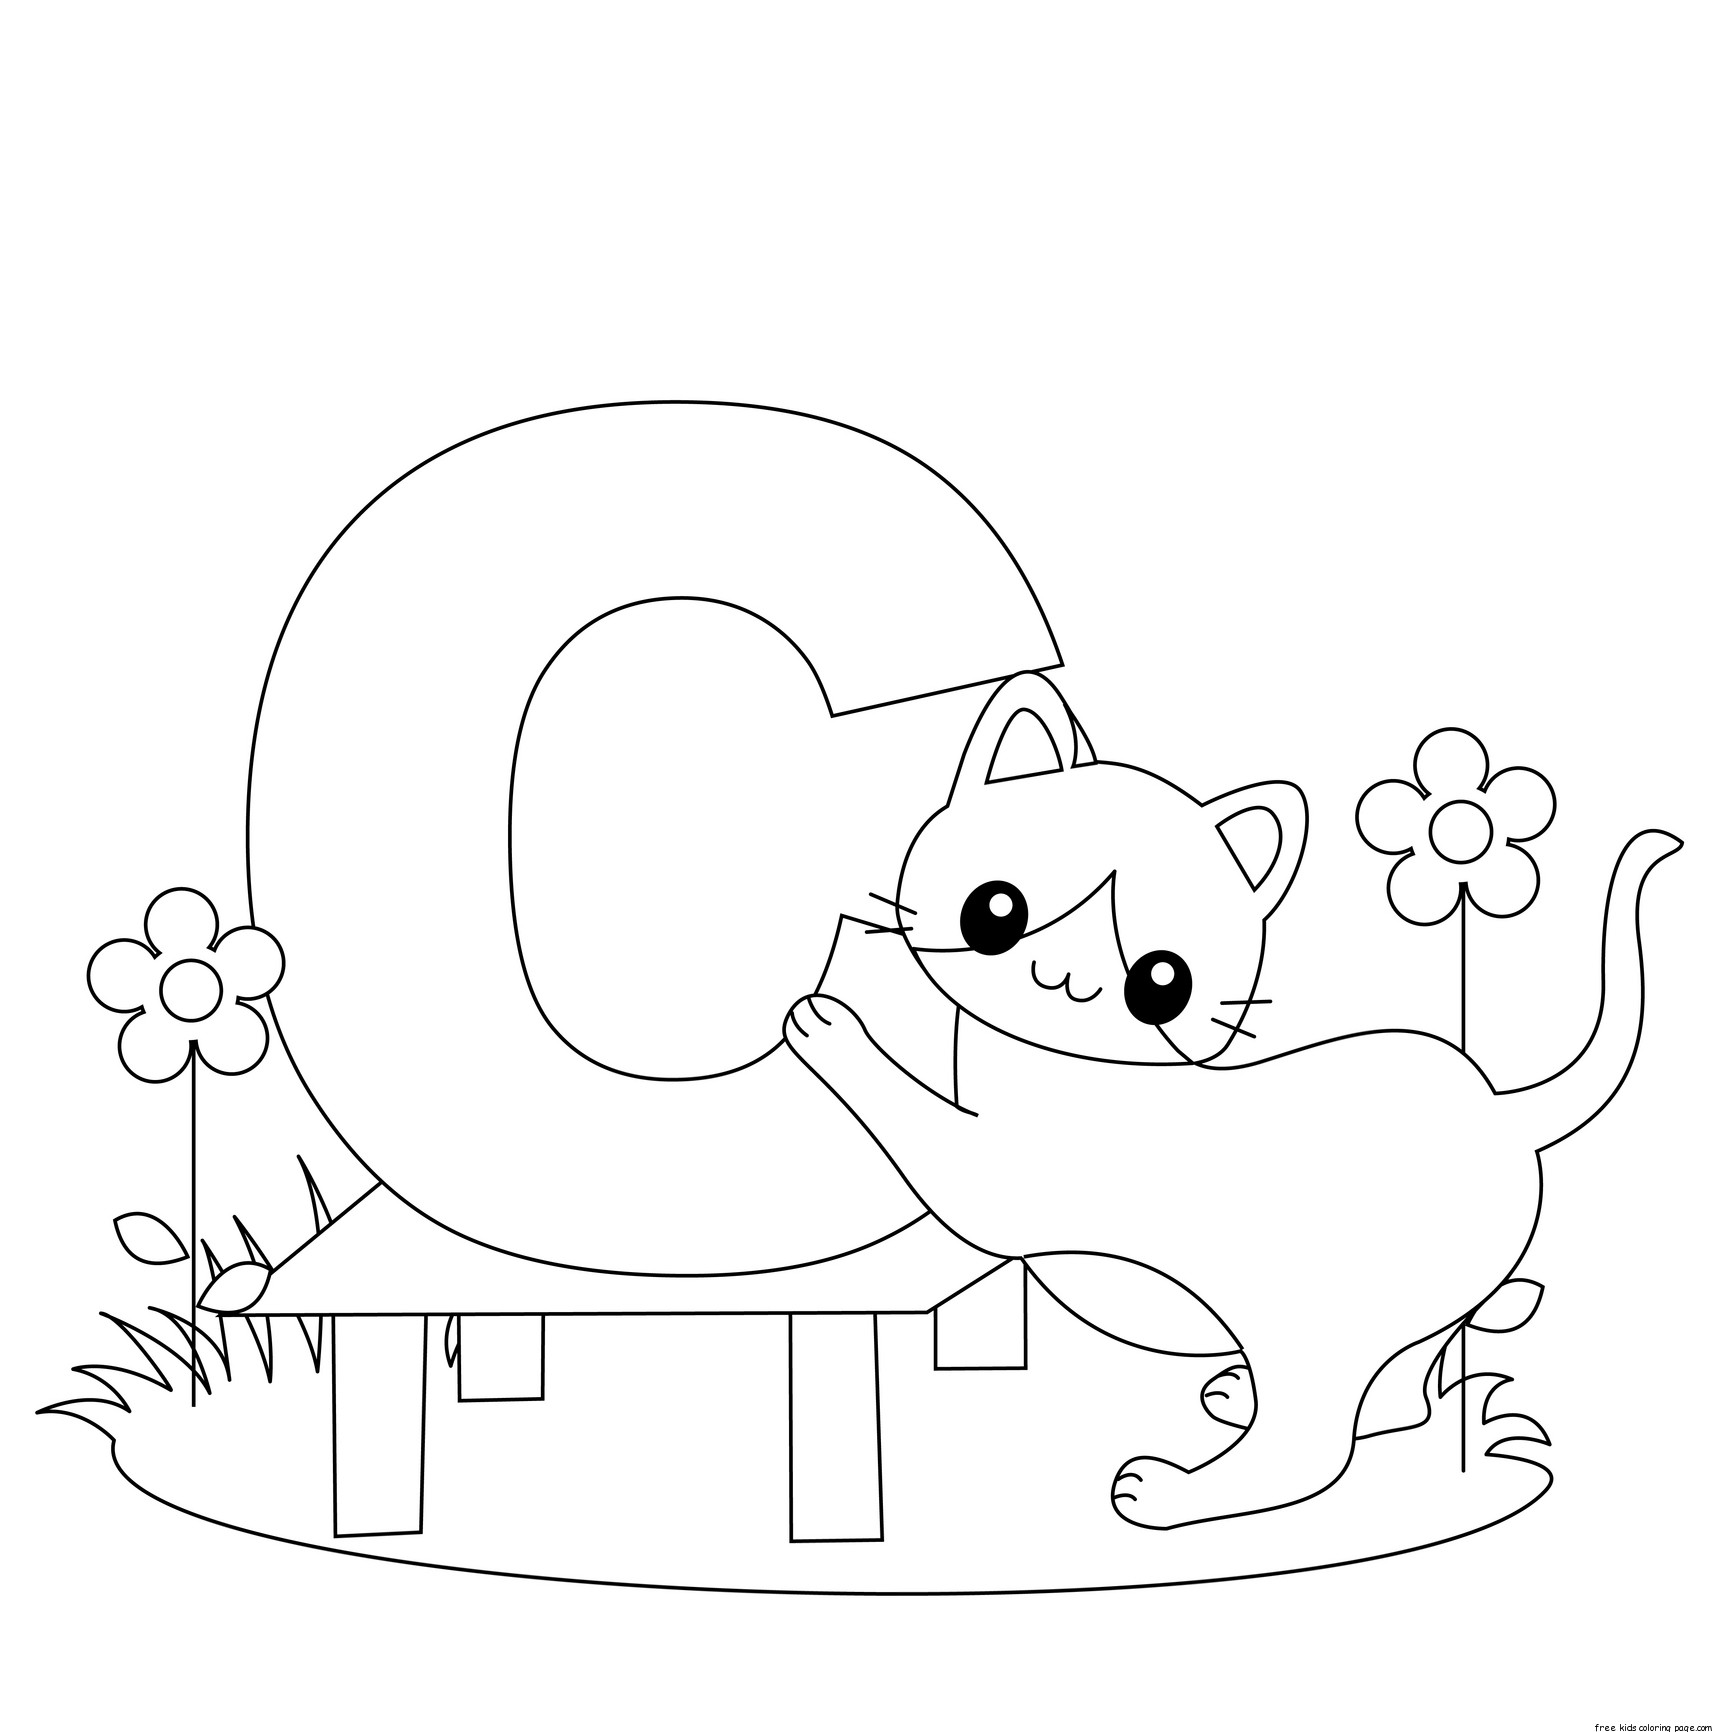 free alphabet coloring pages free printable alphabet coloring pages for kids and adults alphabet free coloring pages